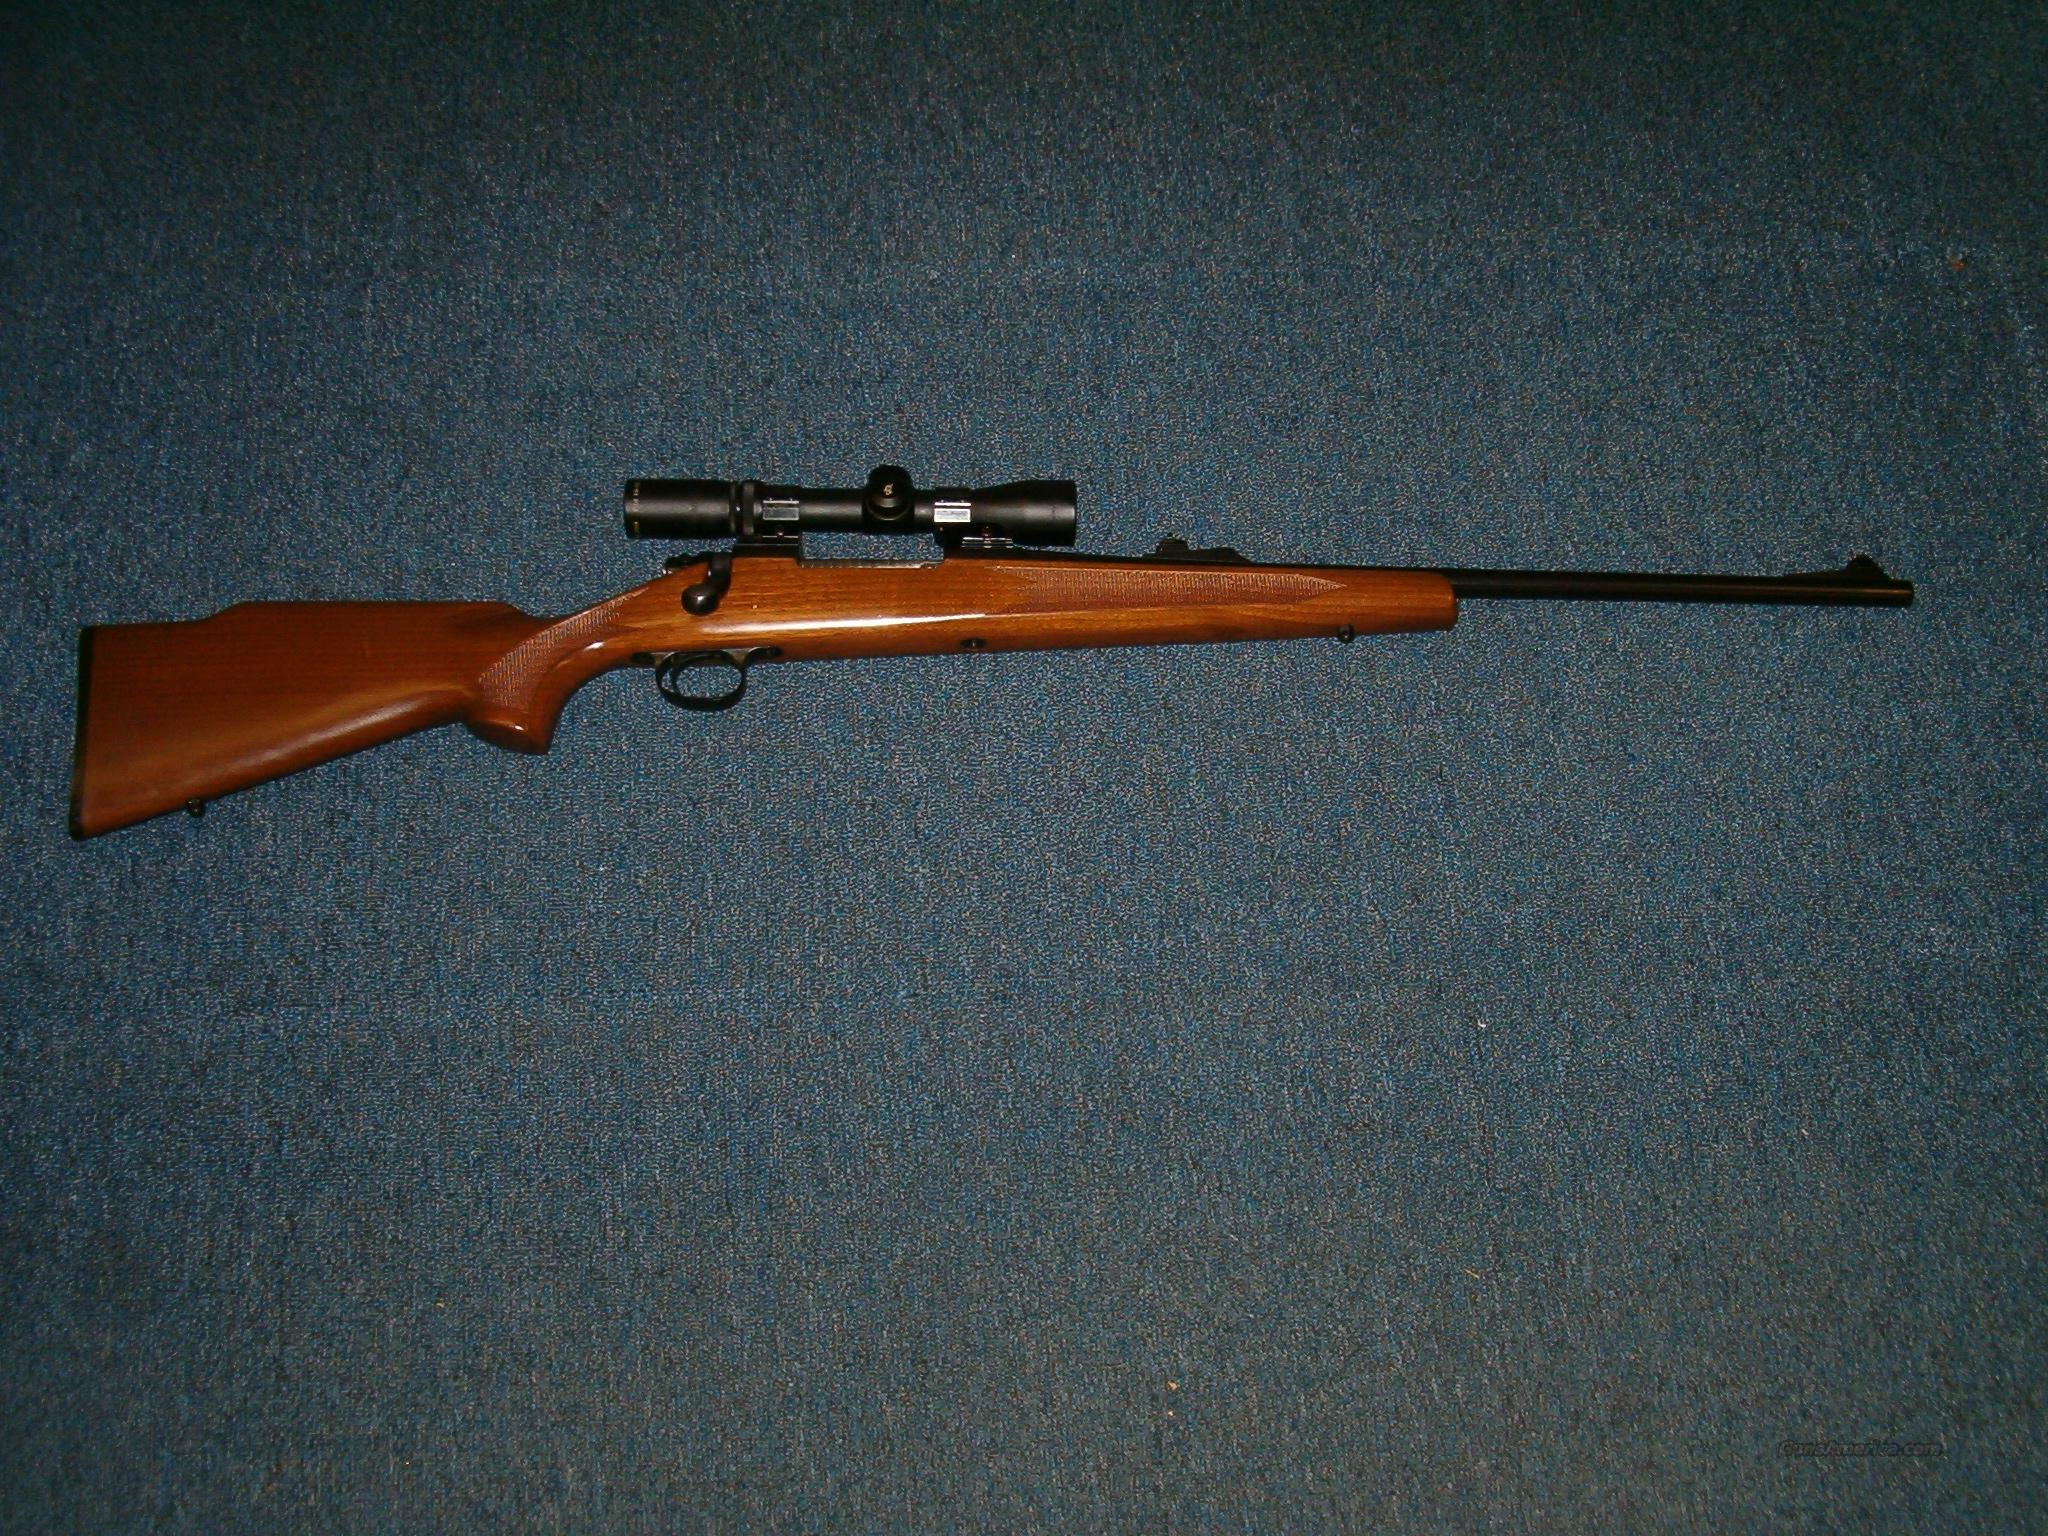 Remington Model 700  B/A  .270 w/Burris scope  Guns > Rifles > Remington Rifles - Modern > Model 700 > Sporting